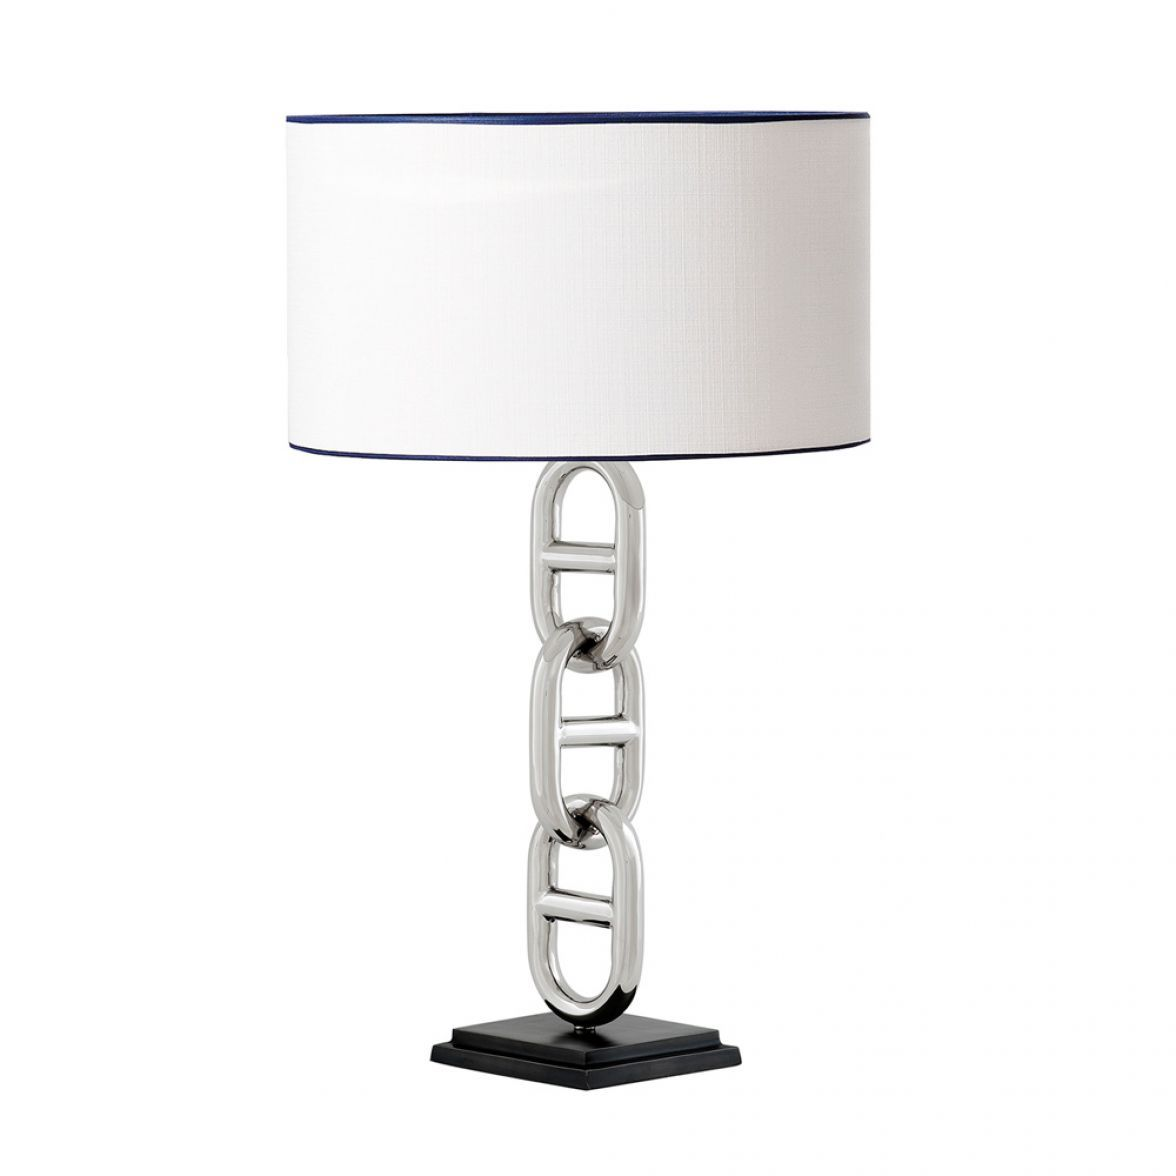 St Barth table lamp  фото цена